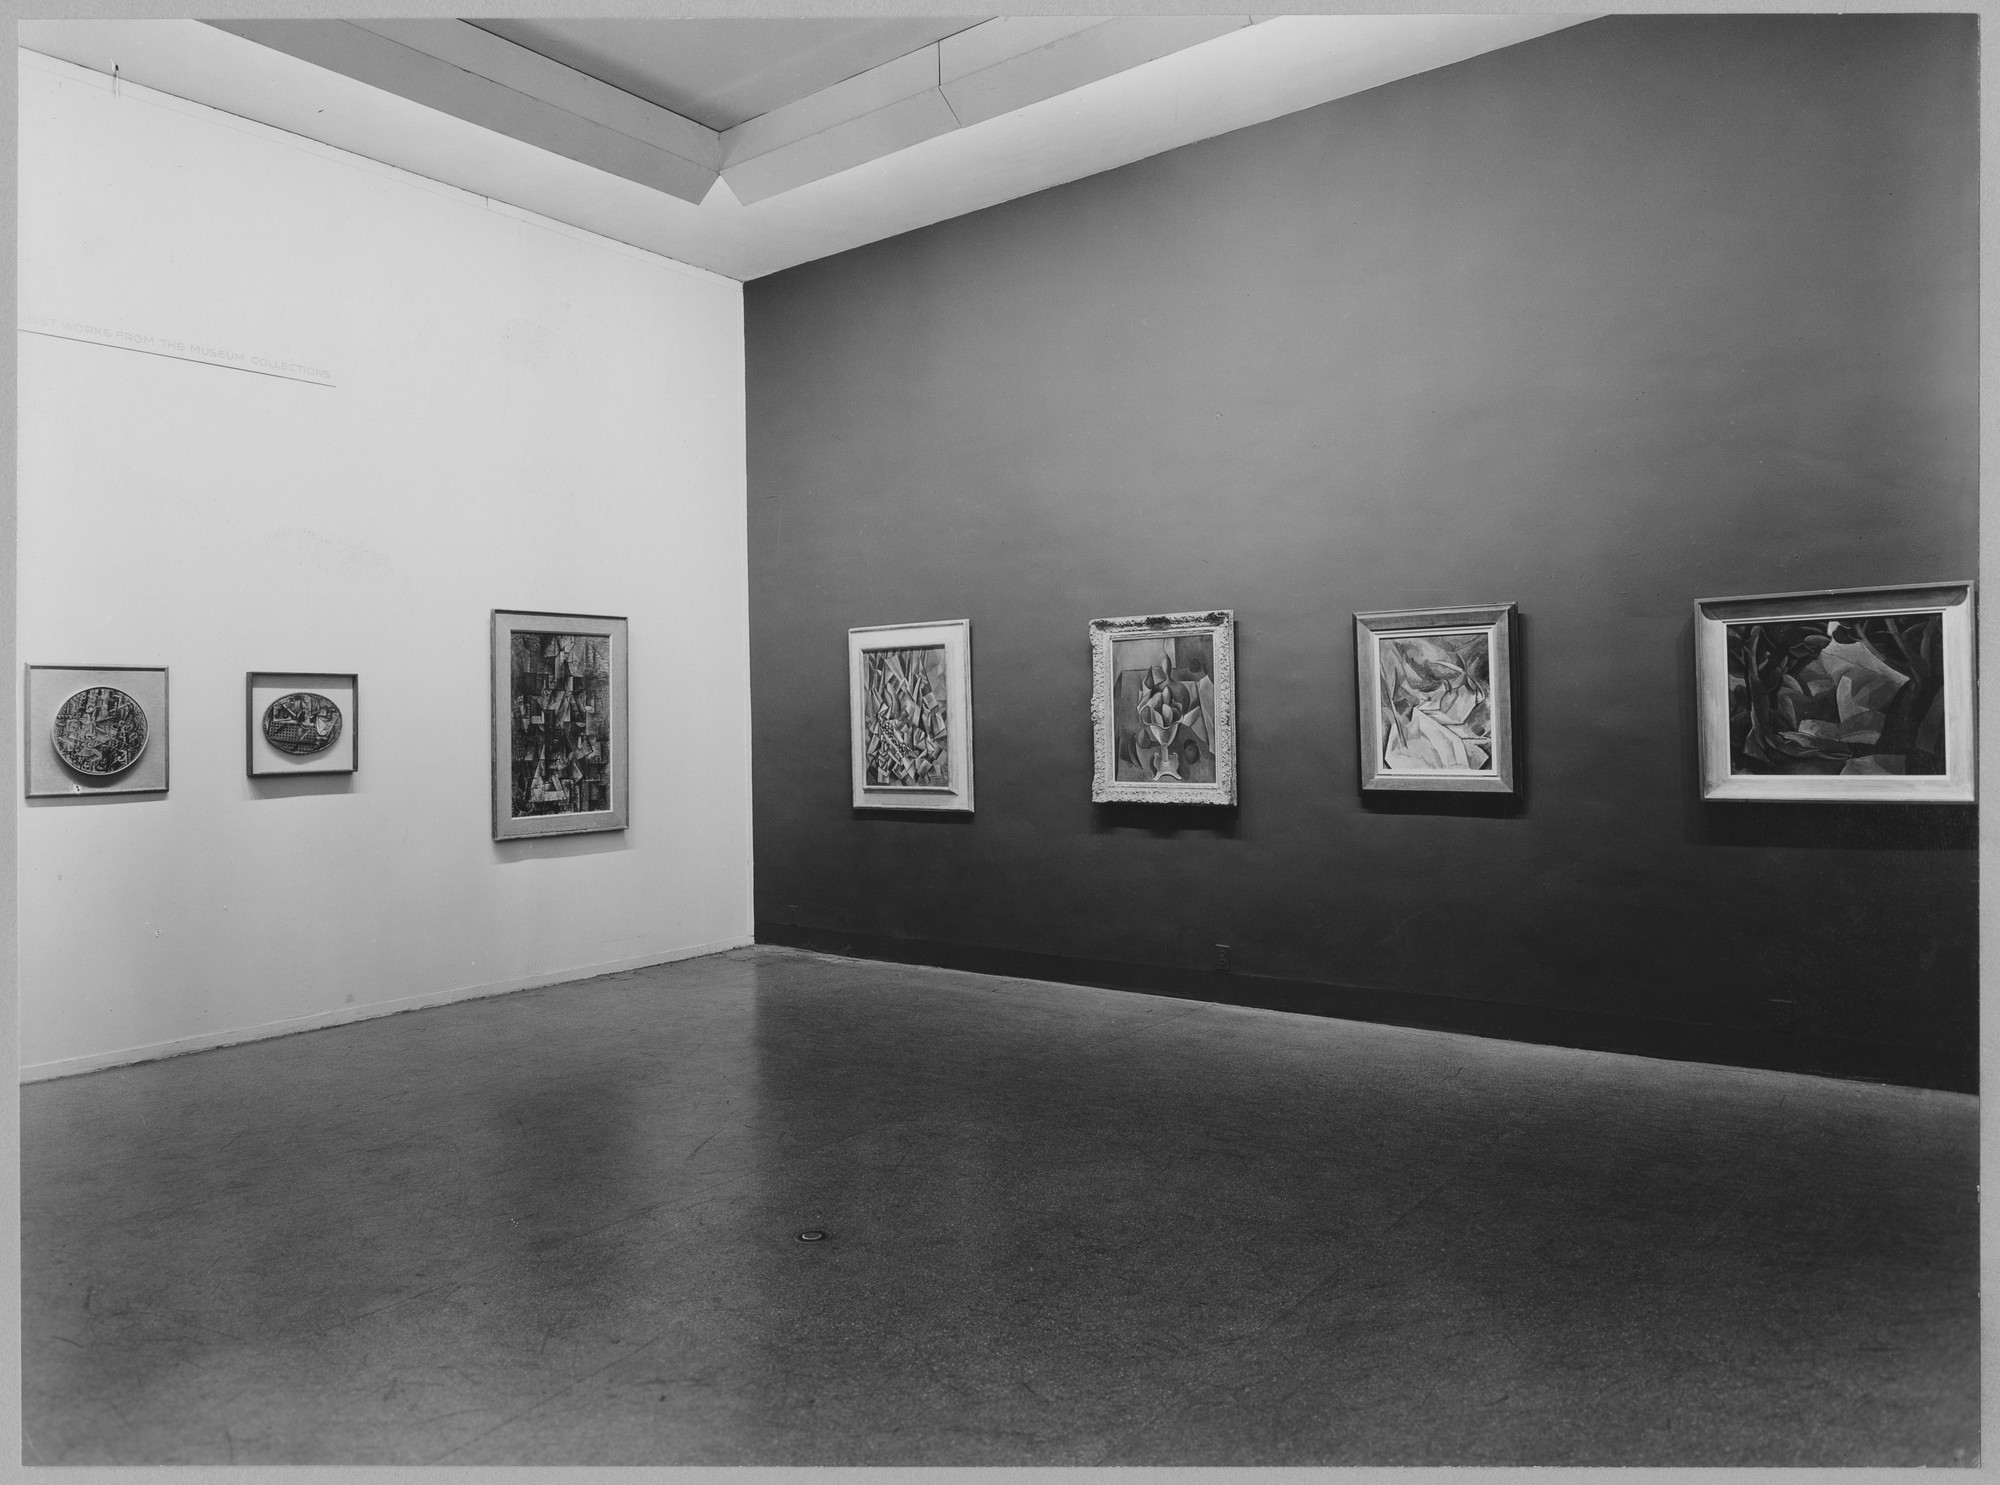 "Installation view of the exhibition, ""Works form the Museum Collection."" August 12, 1952–September 21, 1952. Photographic Archive. The Museum of Modern Art Archives, New York. IN517.1. Photograph by Soichi Sunami."